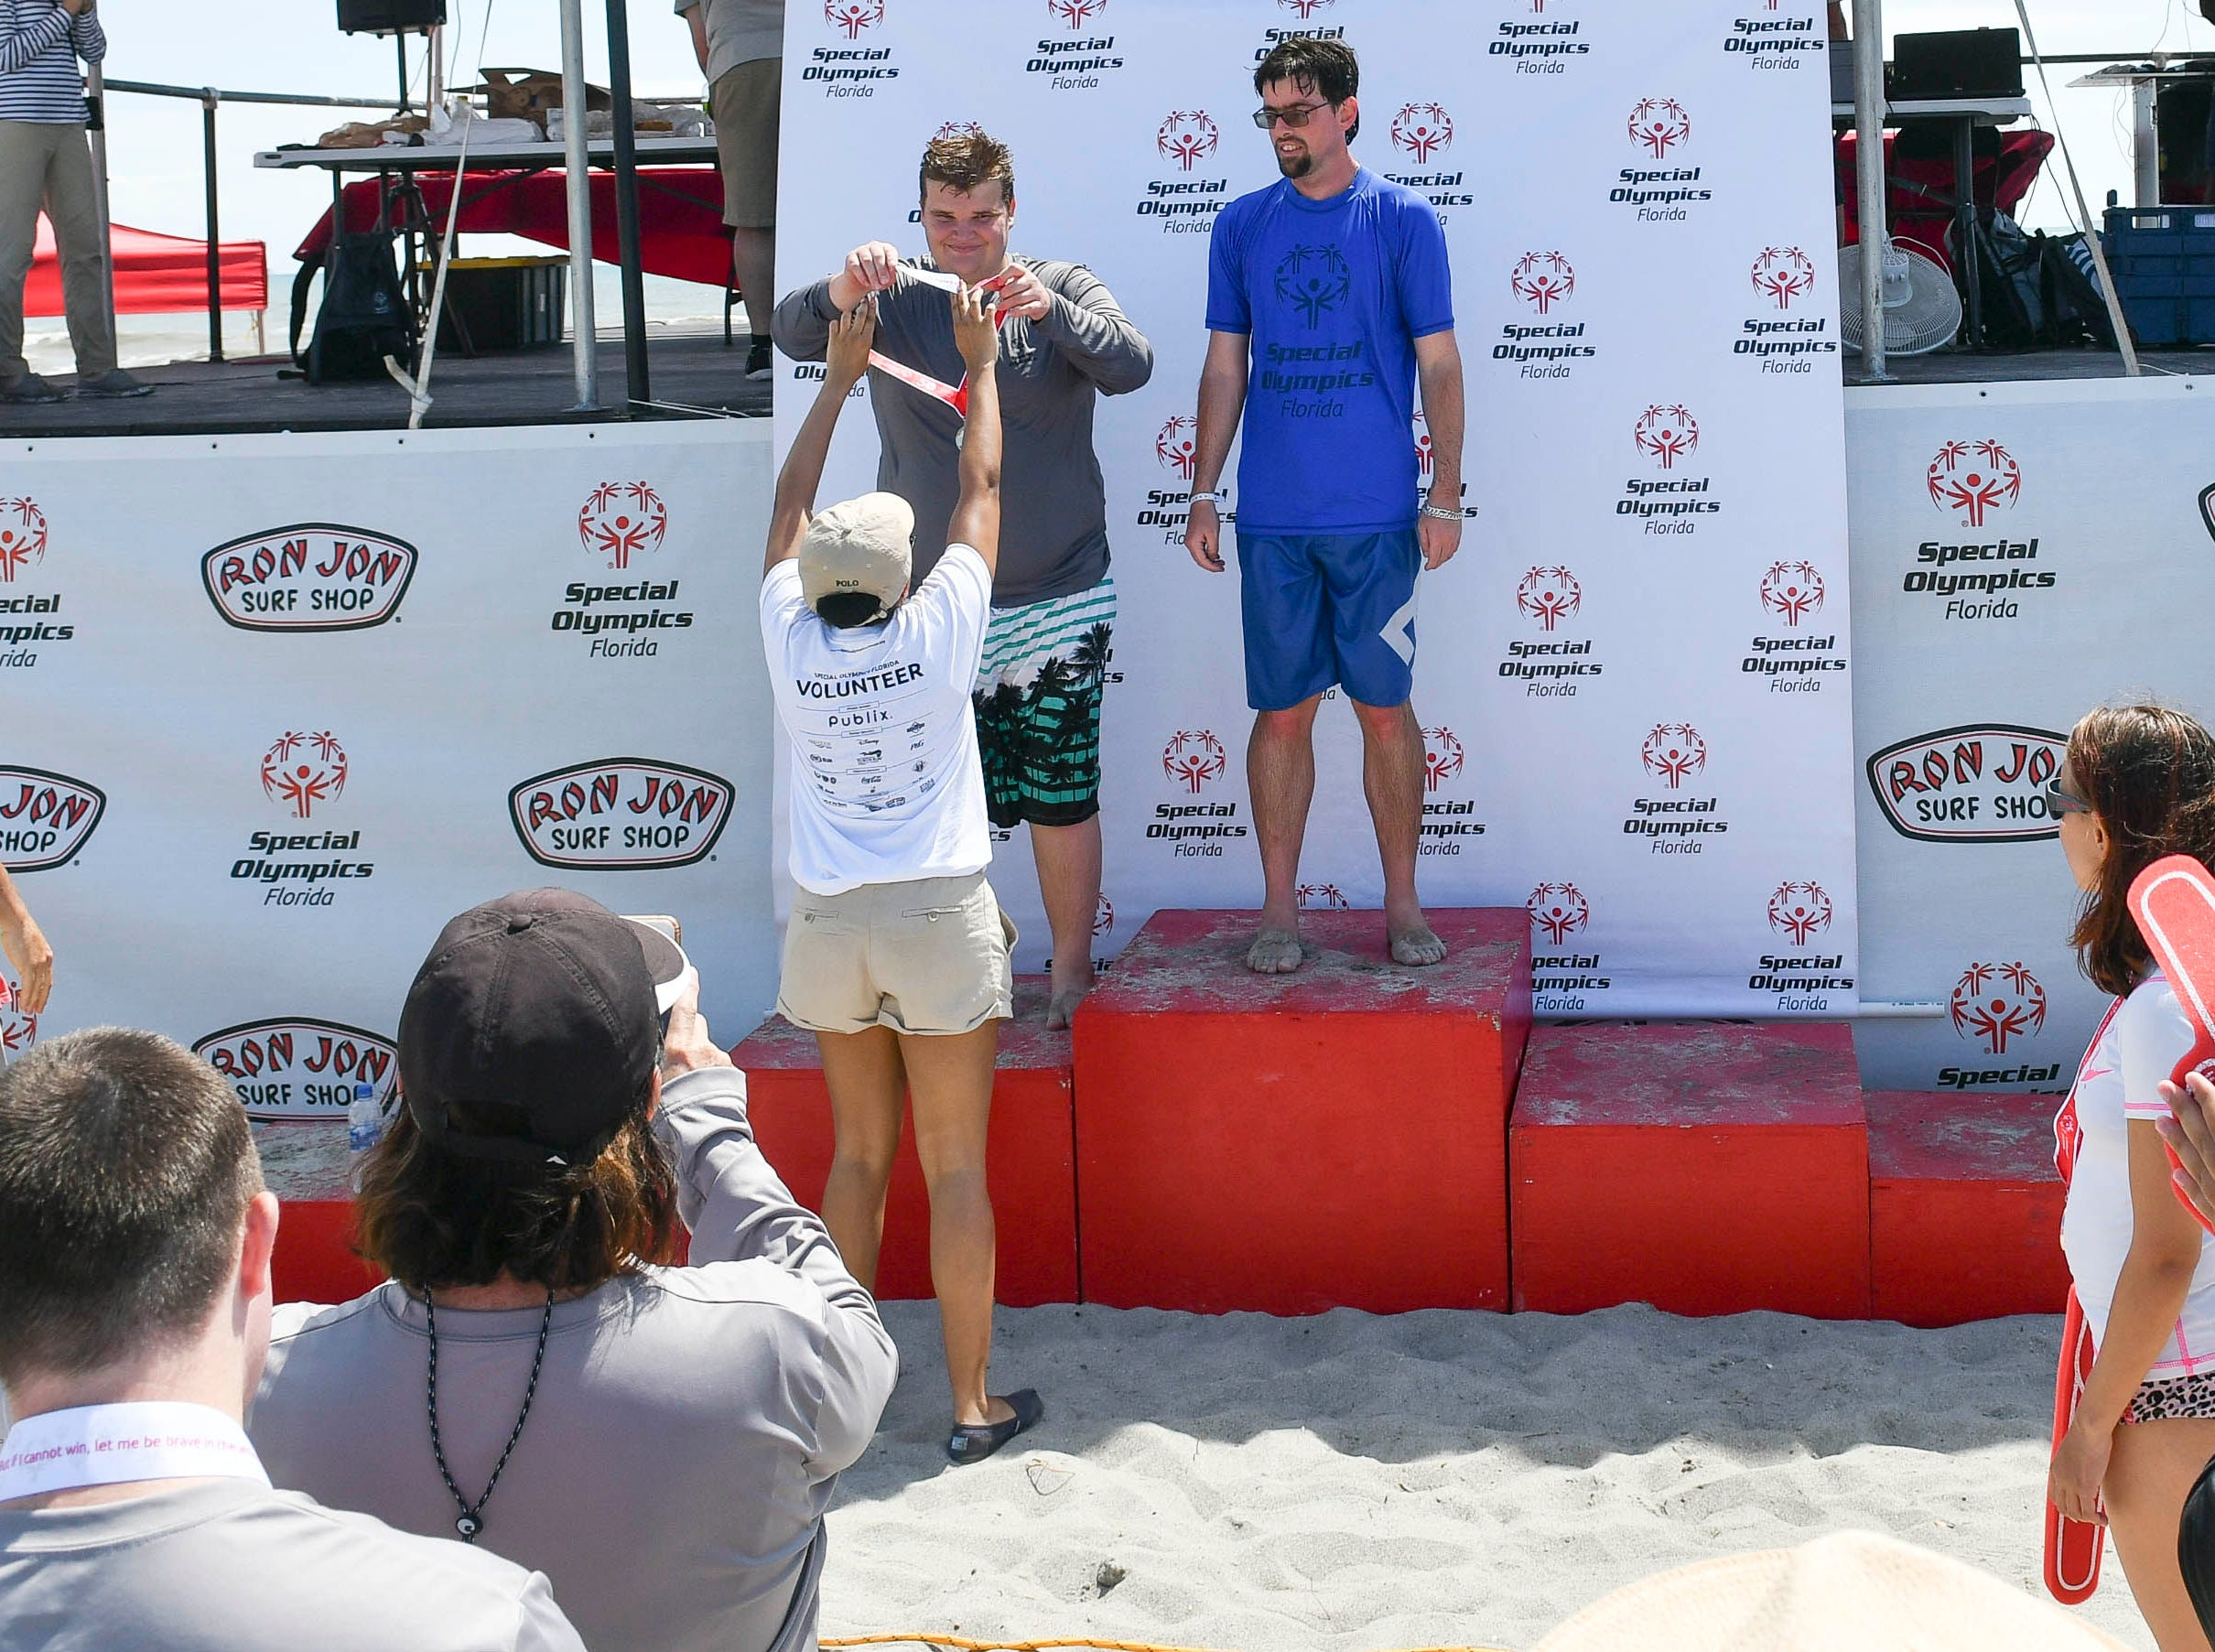 Bryan Padron and Jacob Nehus receive their medals during the Special Olympics Florida spring surfing festival at Shepard Park.